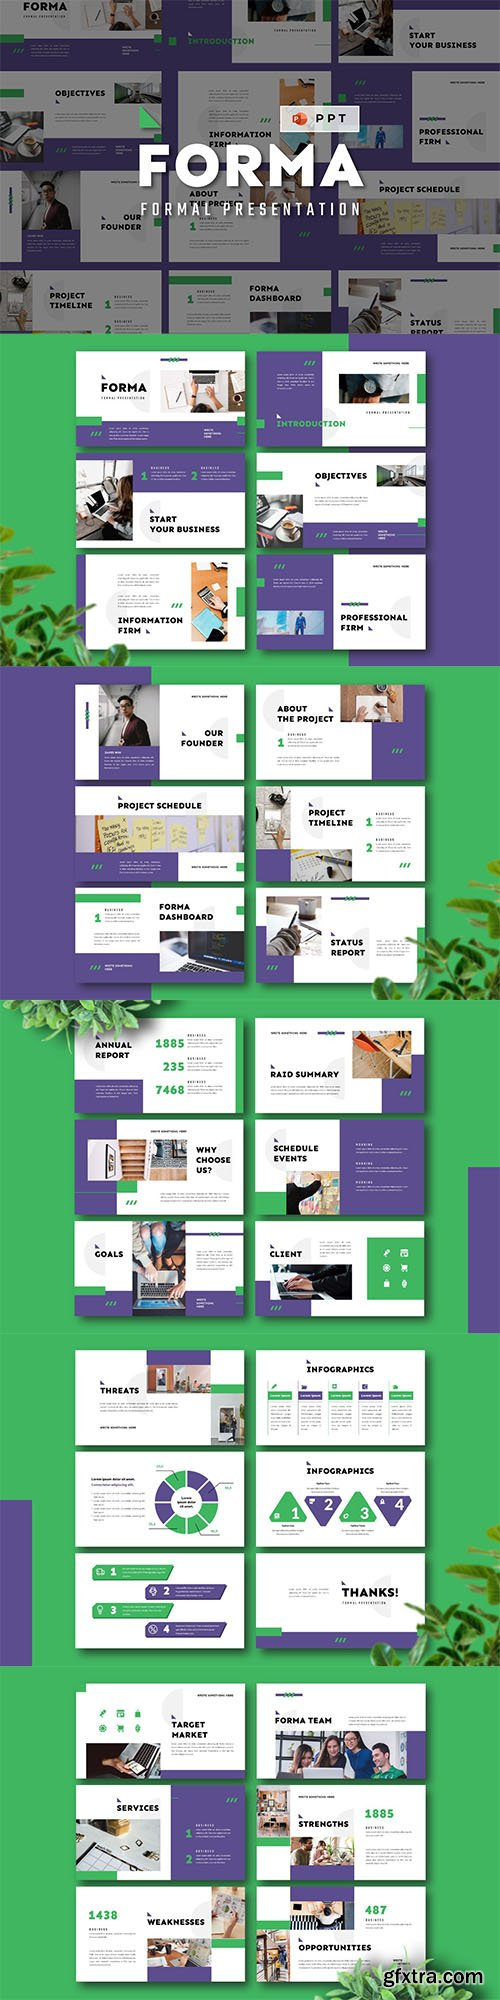 FORMA - Formal Powerpoint, Keynote and Google Slide Template